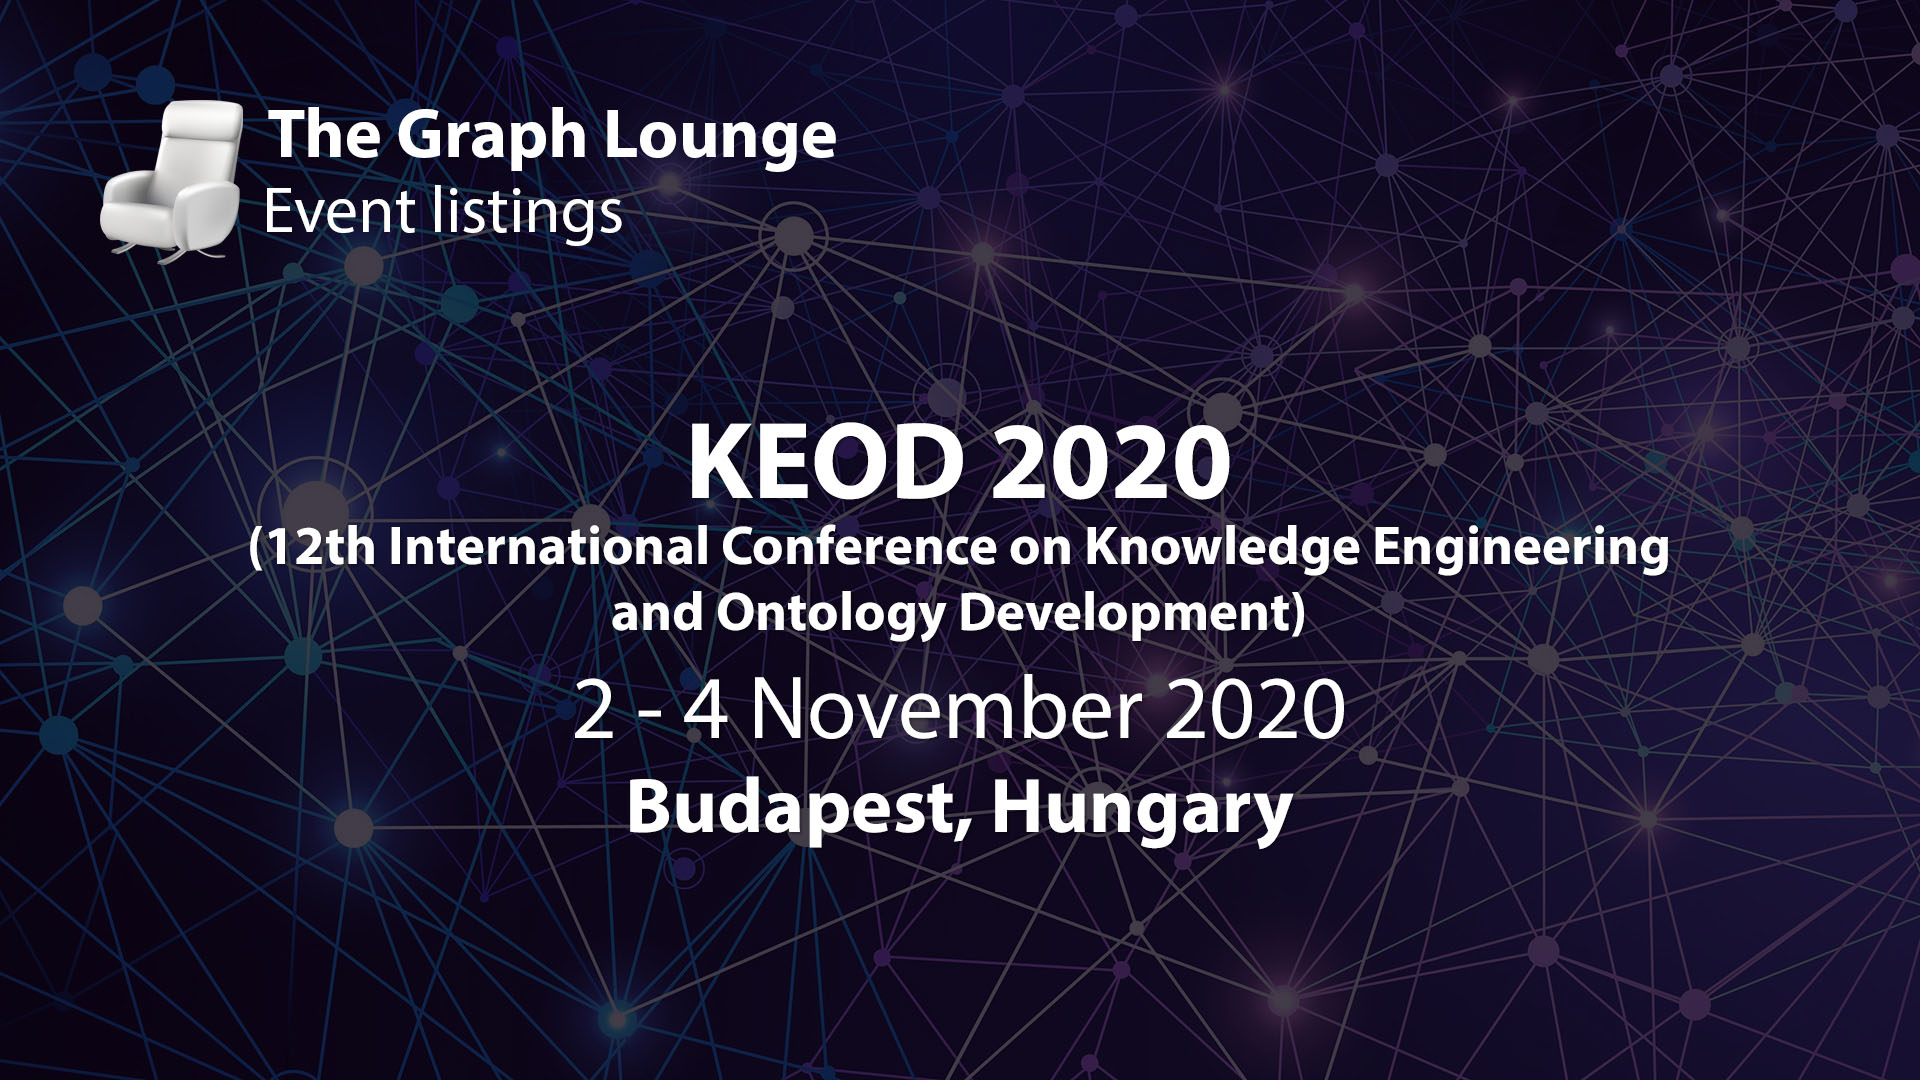 KEOD 2020 (12th International Conference on Knowledge Engineering and Ontology Development)